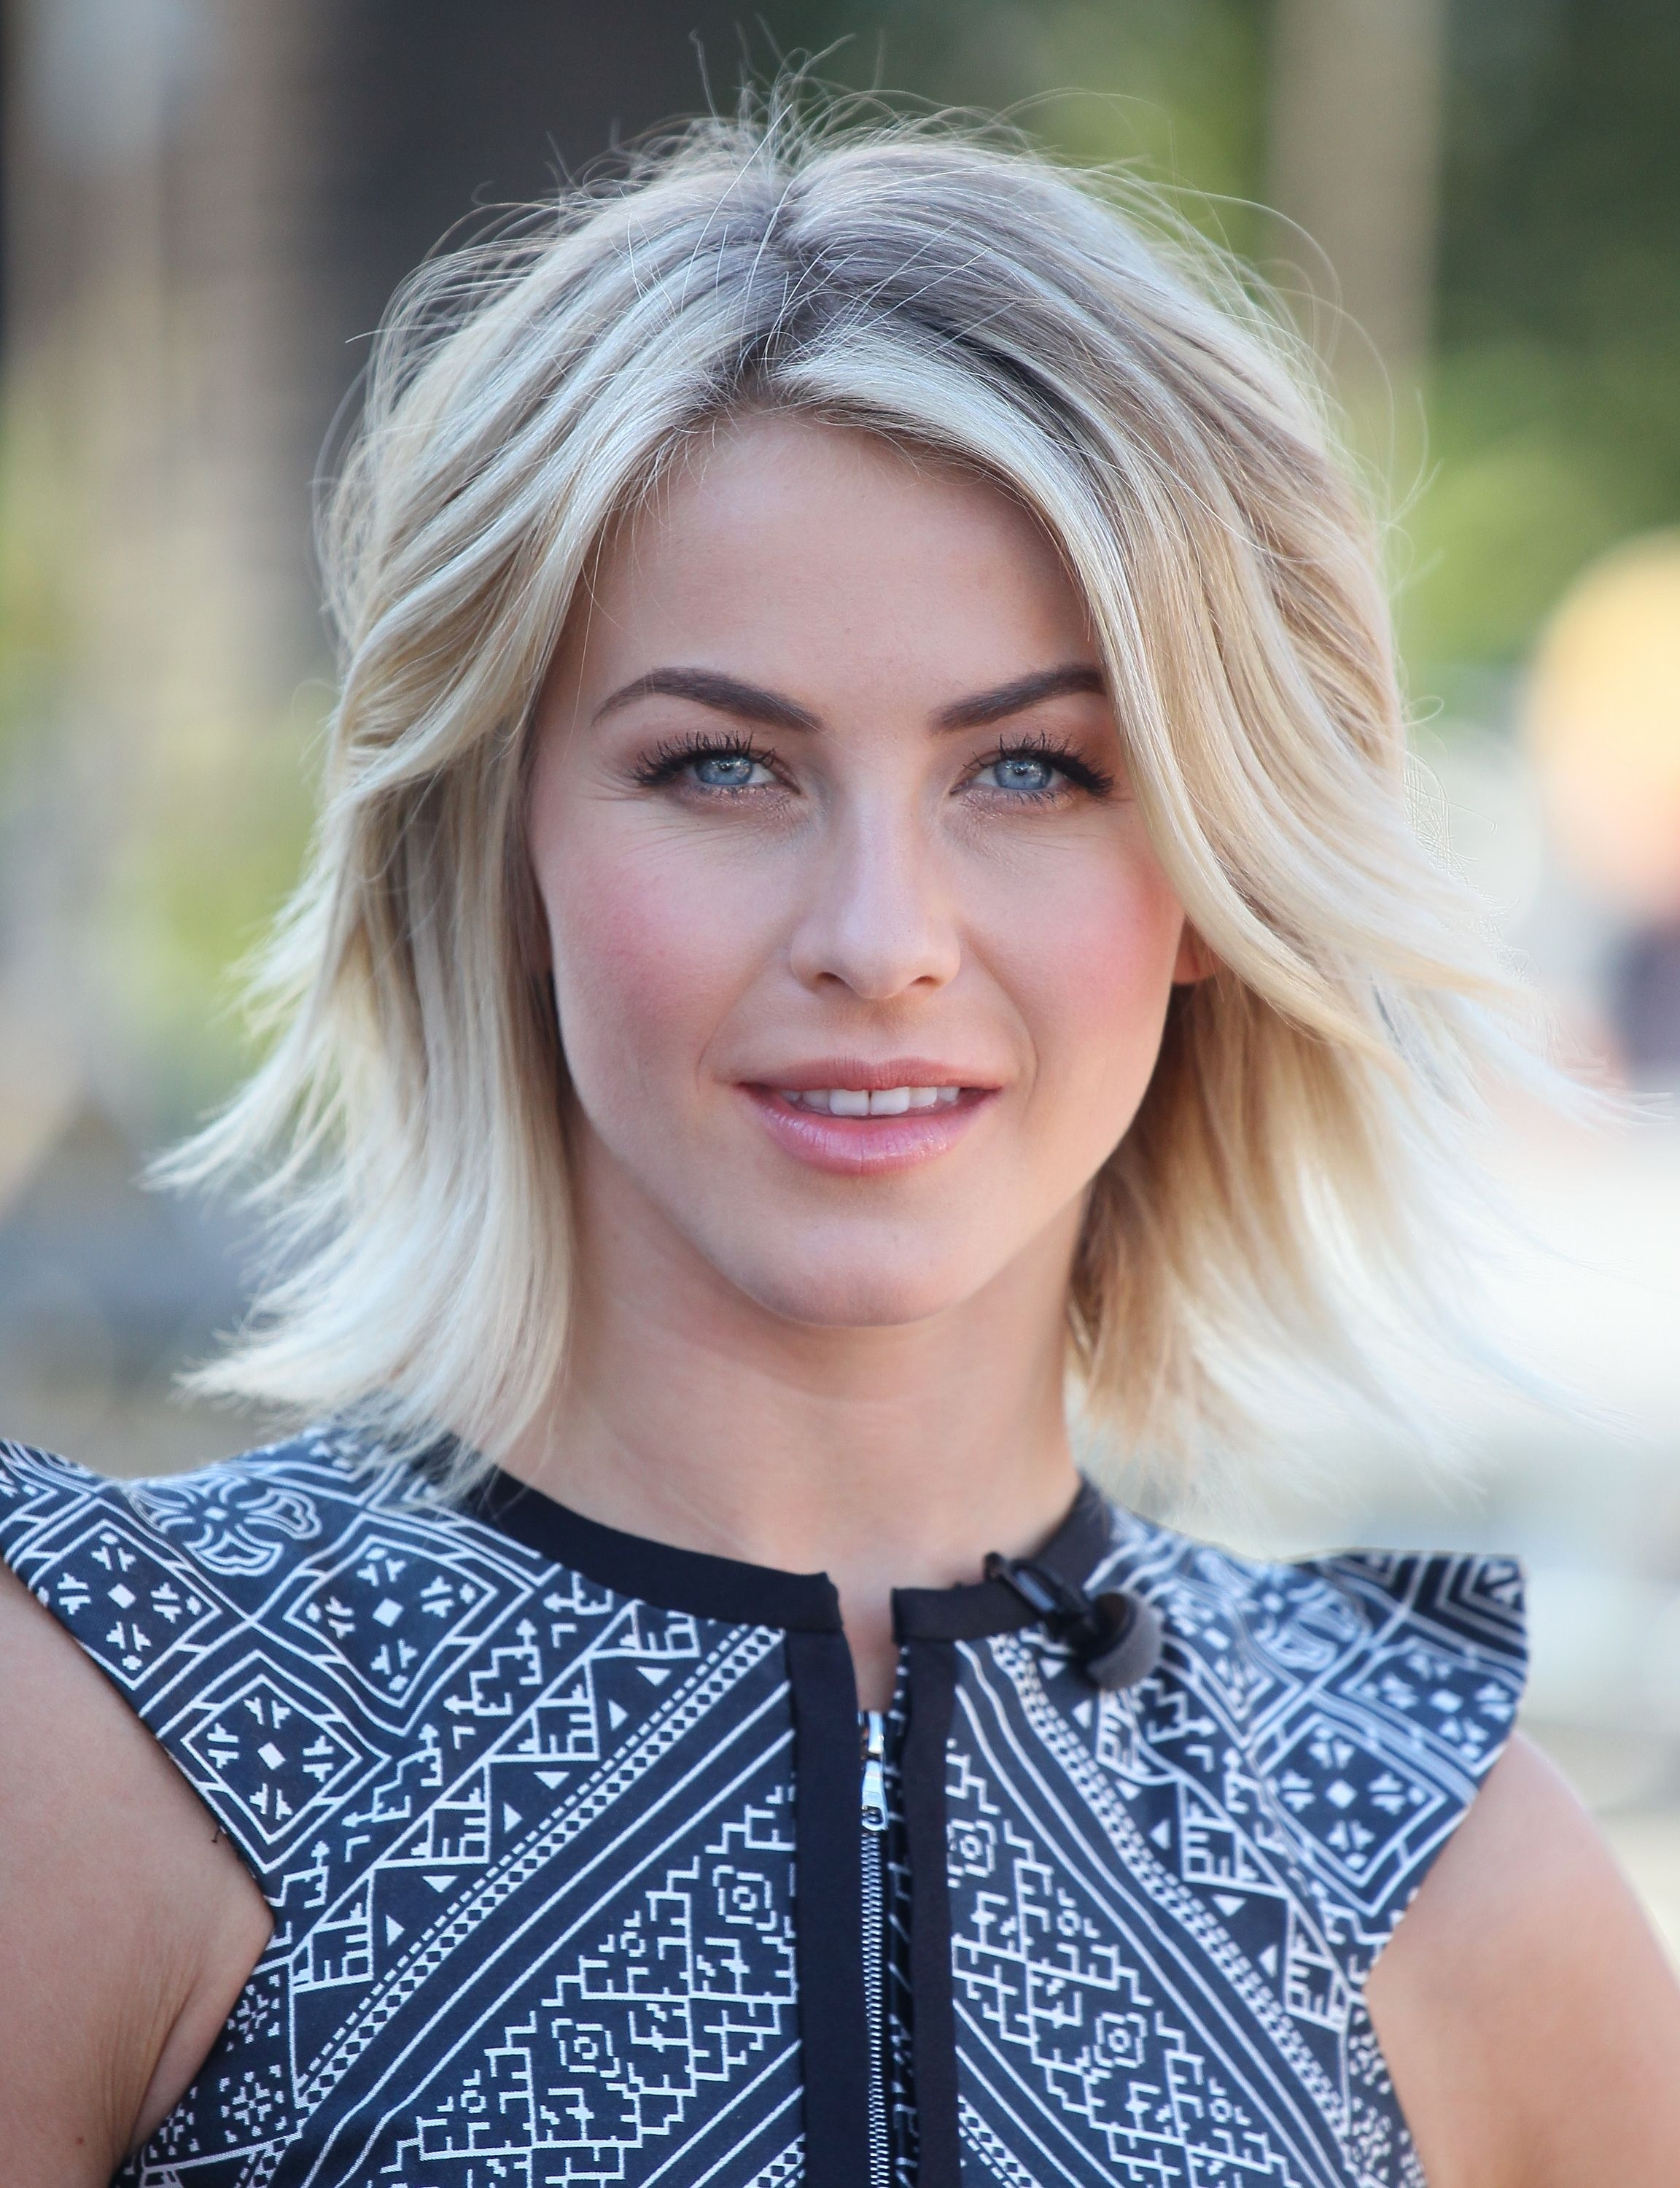 34 Best Hairstyles For Thin Hair - Haircuts For Women With Fine Or regarding Haircut For Extremely Thin Hair